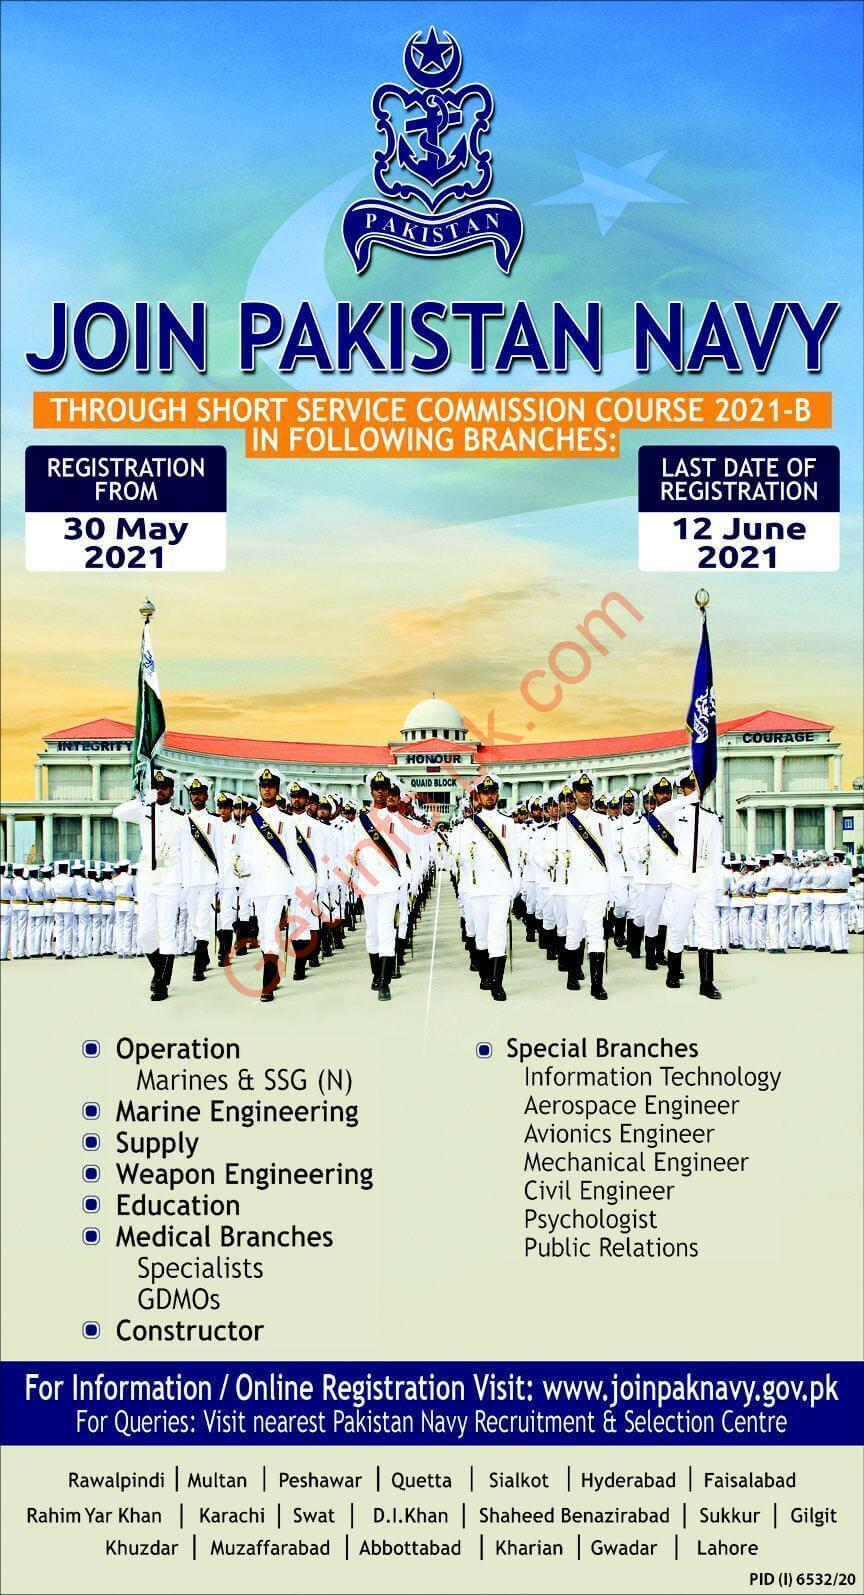 Join Pak Navy through Short Service Commission 2021-B